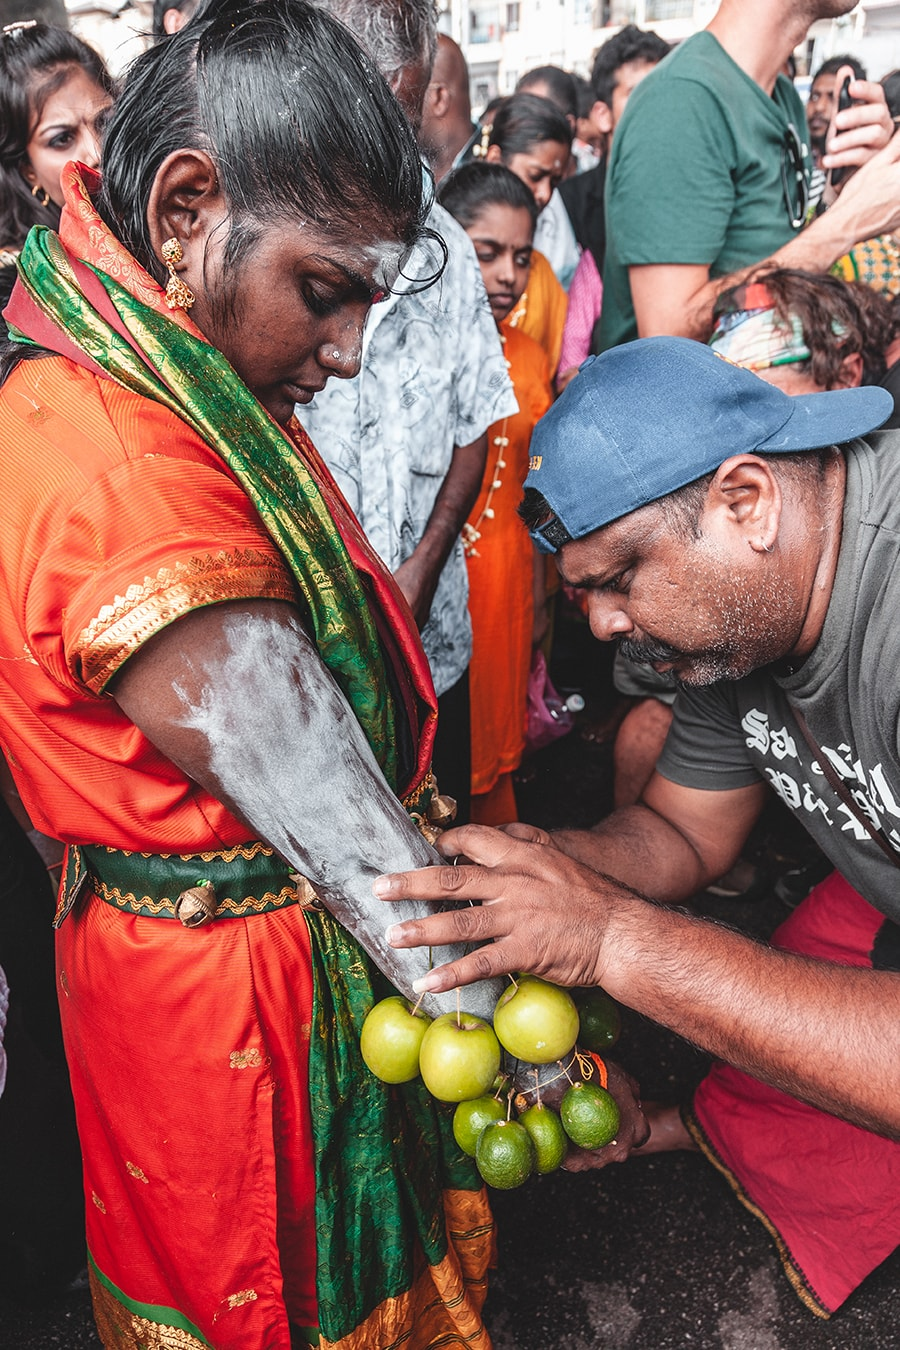 A woman pierced her arm with apples on hooks as an act of devotion during the Thaipusam festival in Kuala Lumpur, Malaysia.